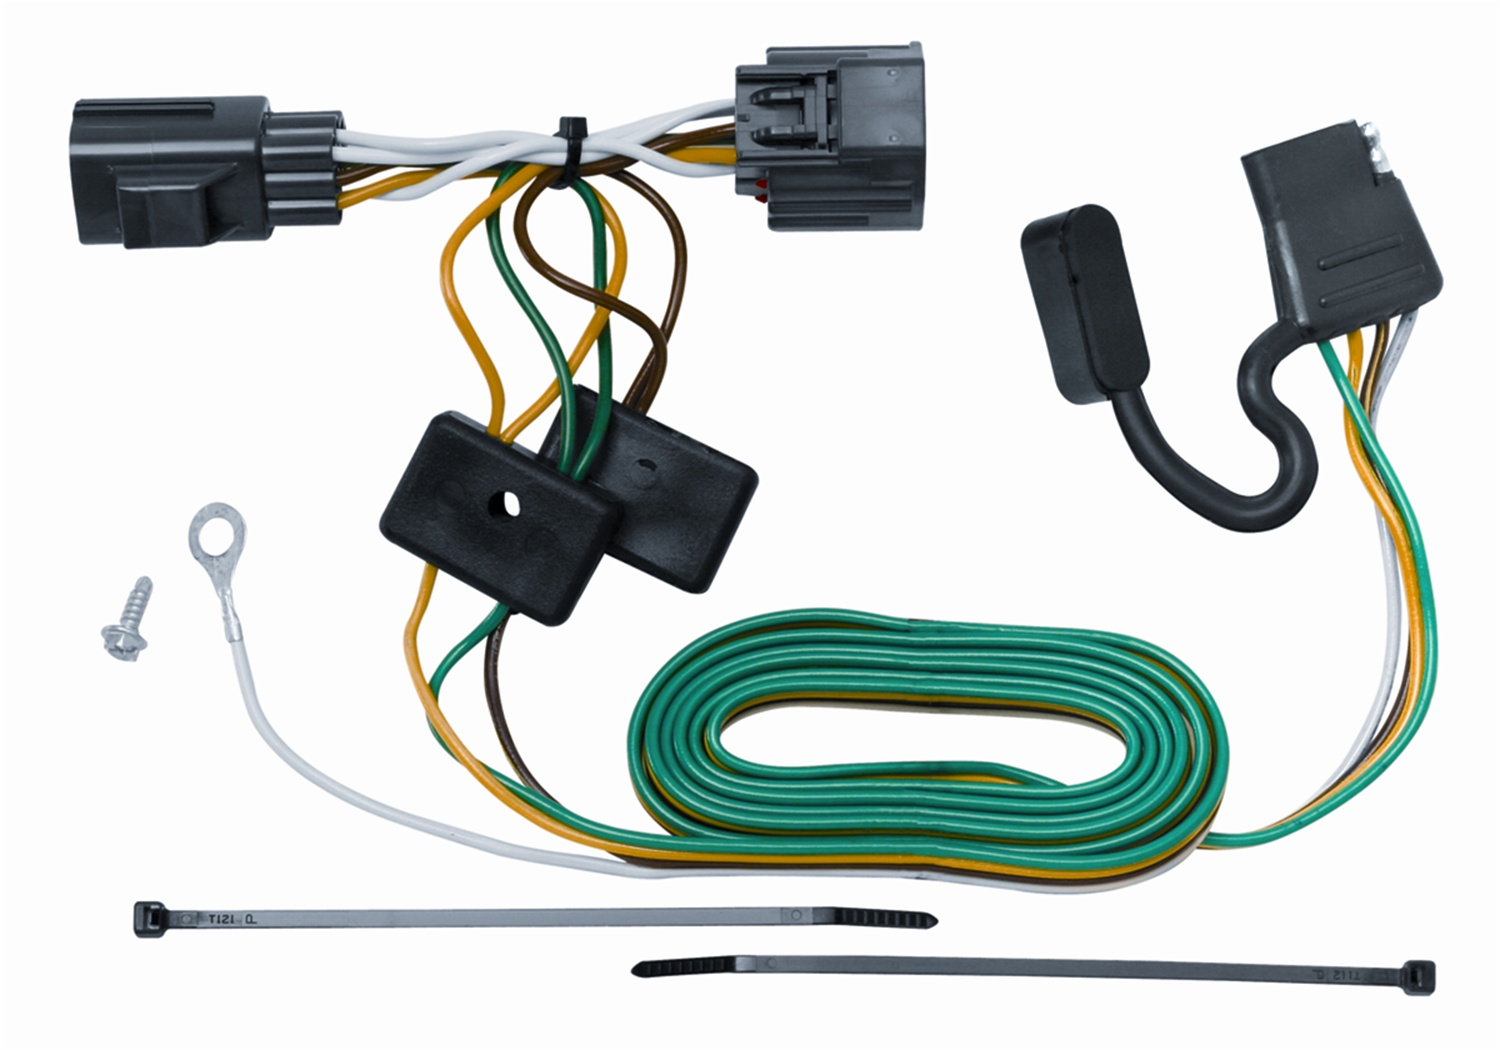 Jeep Wire Harness Connectors Free Wiring Diagram For You Automotive Connector Female Vehicle To Trailer 07 12 Assembly Male And